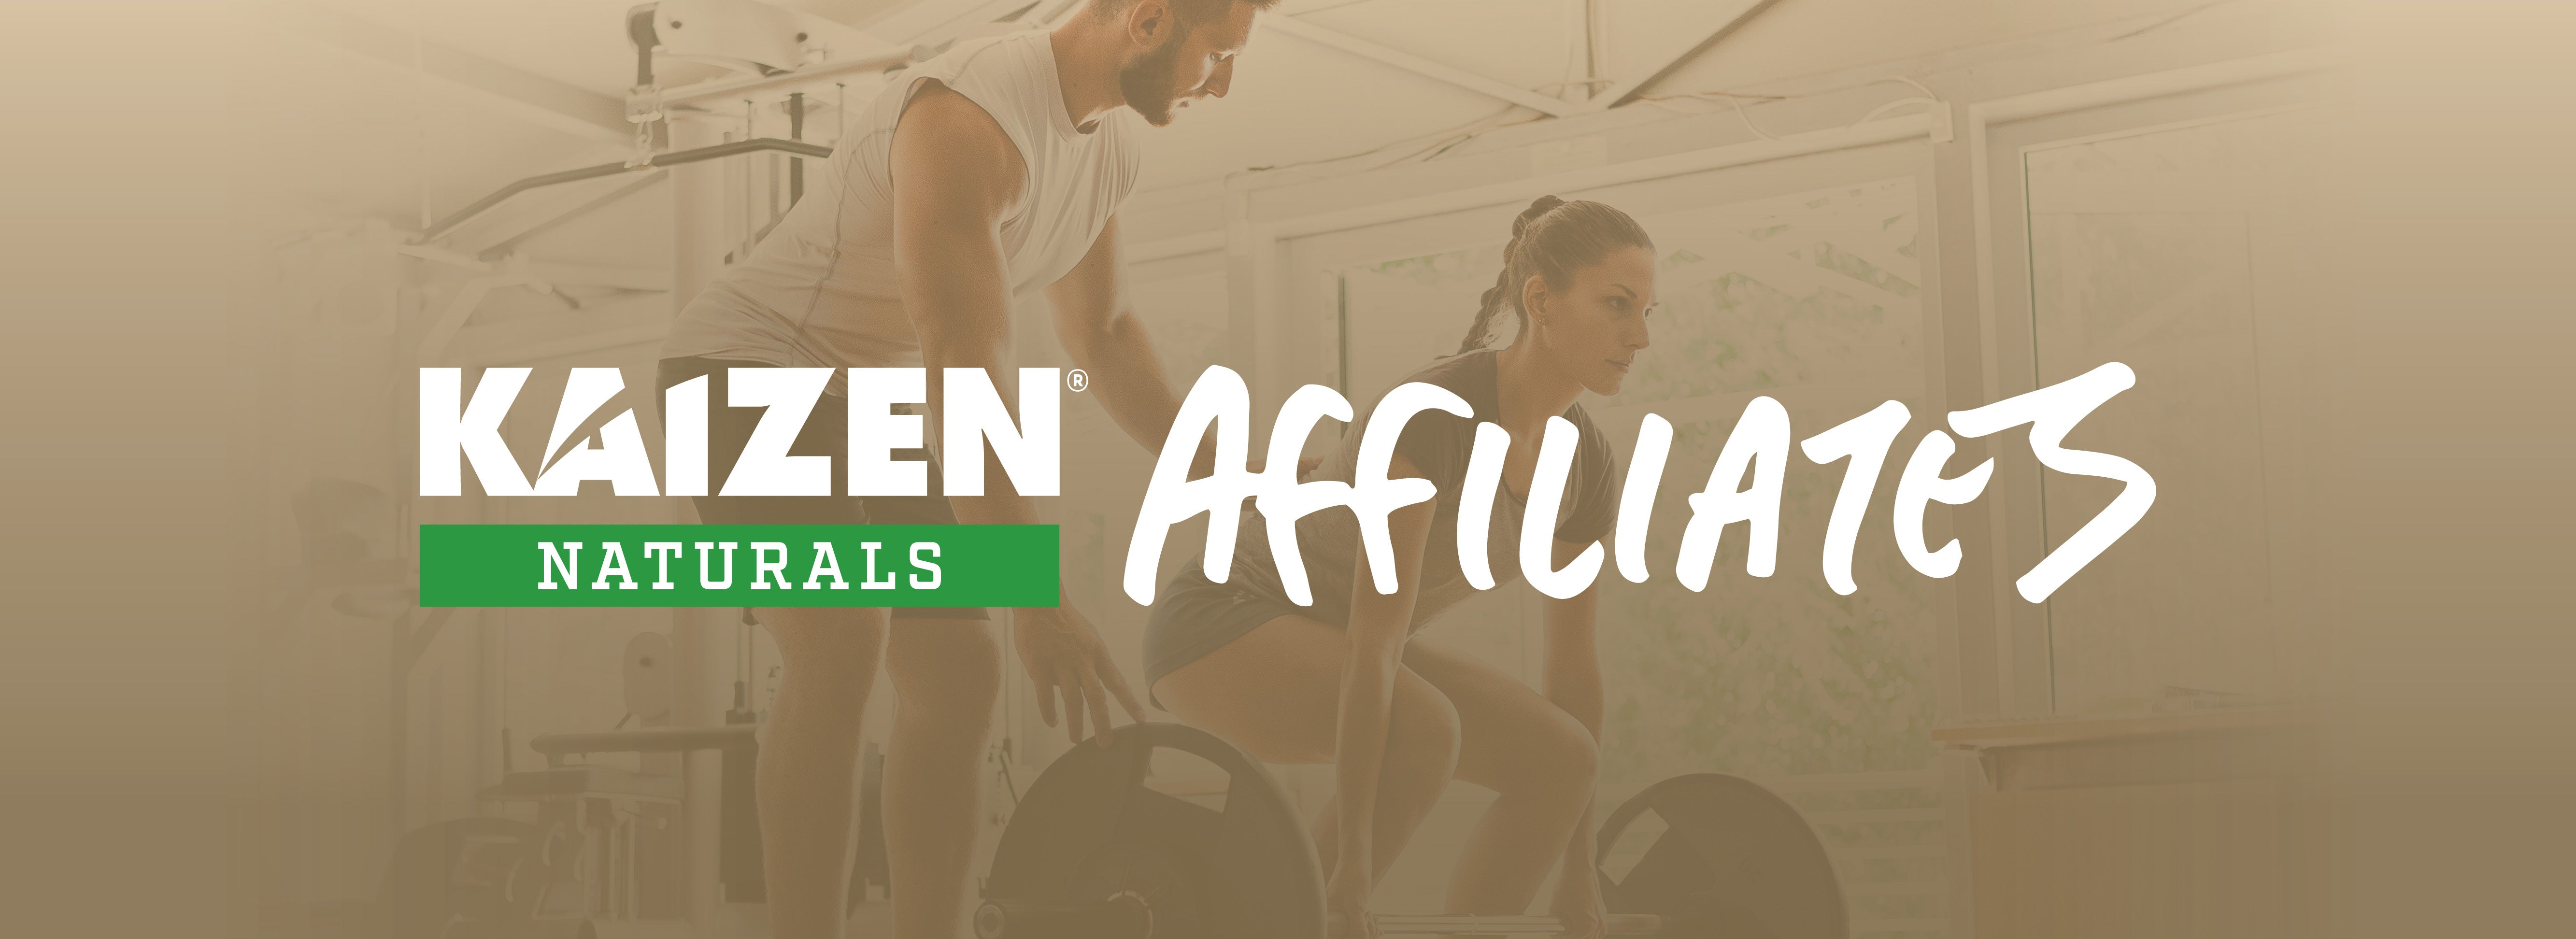 Man helping woman work out, includes Kaizen Naturals Affiliates logo